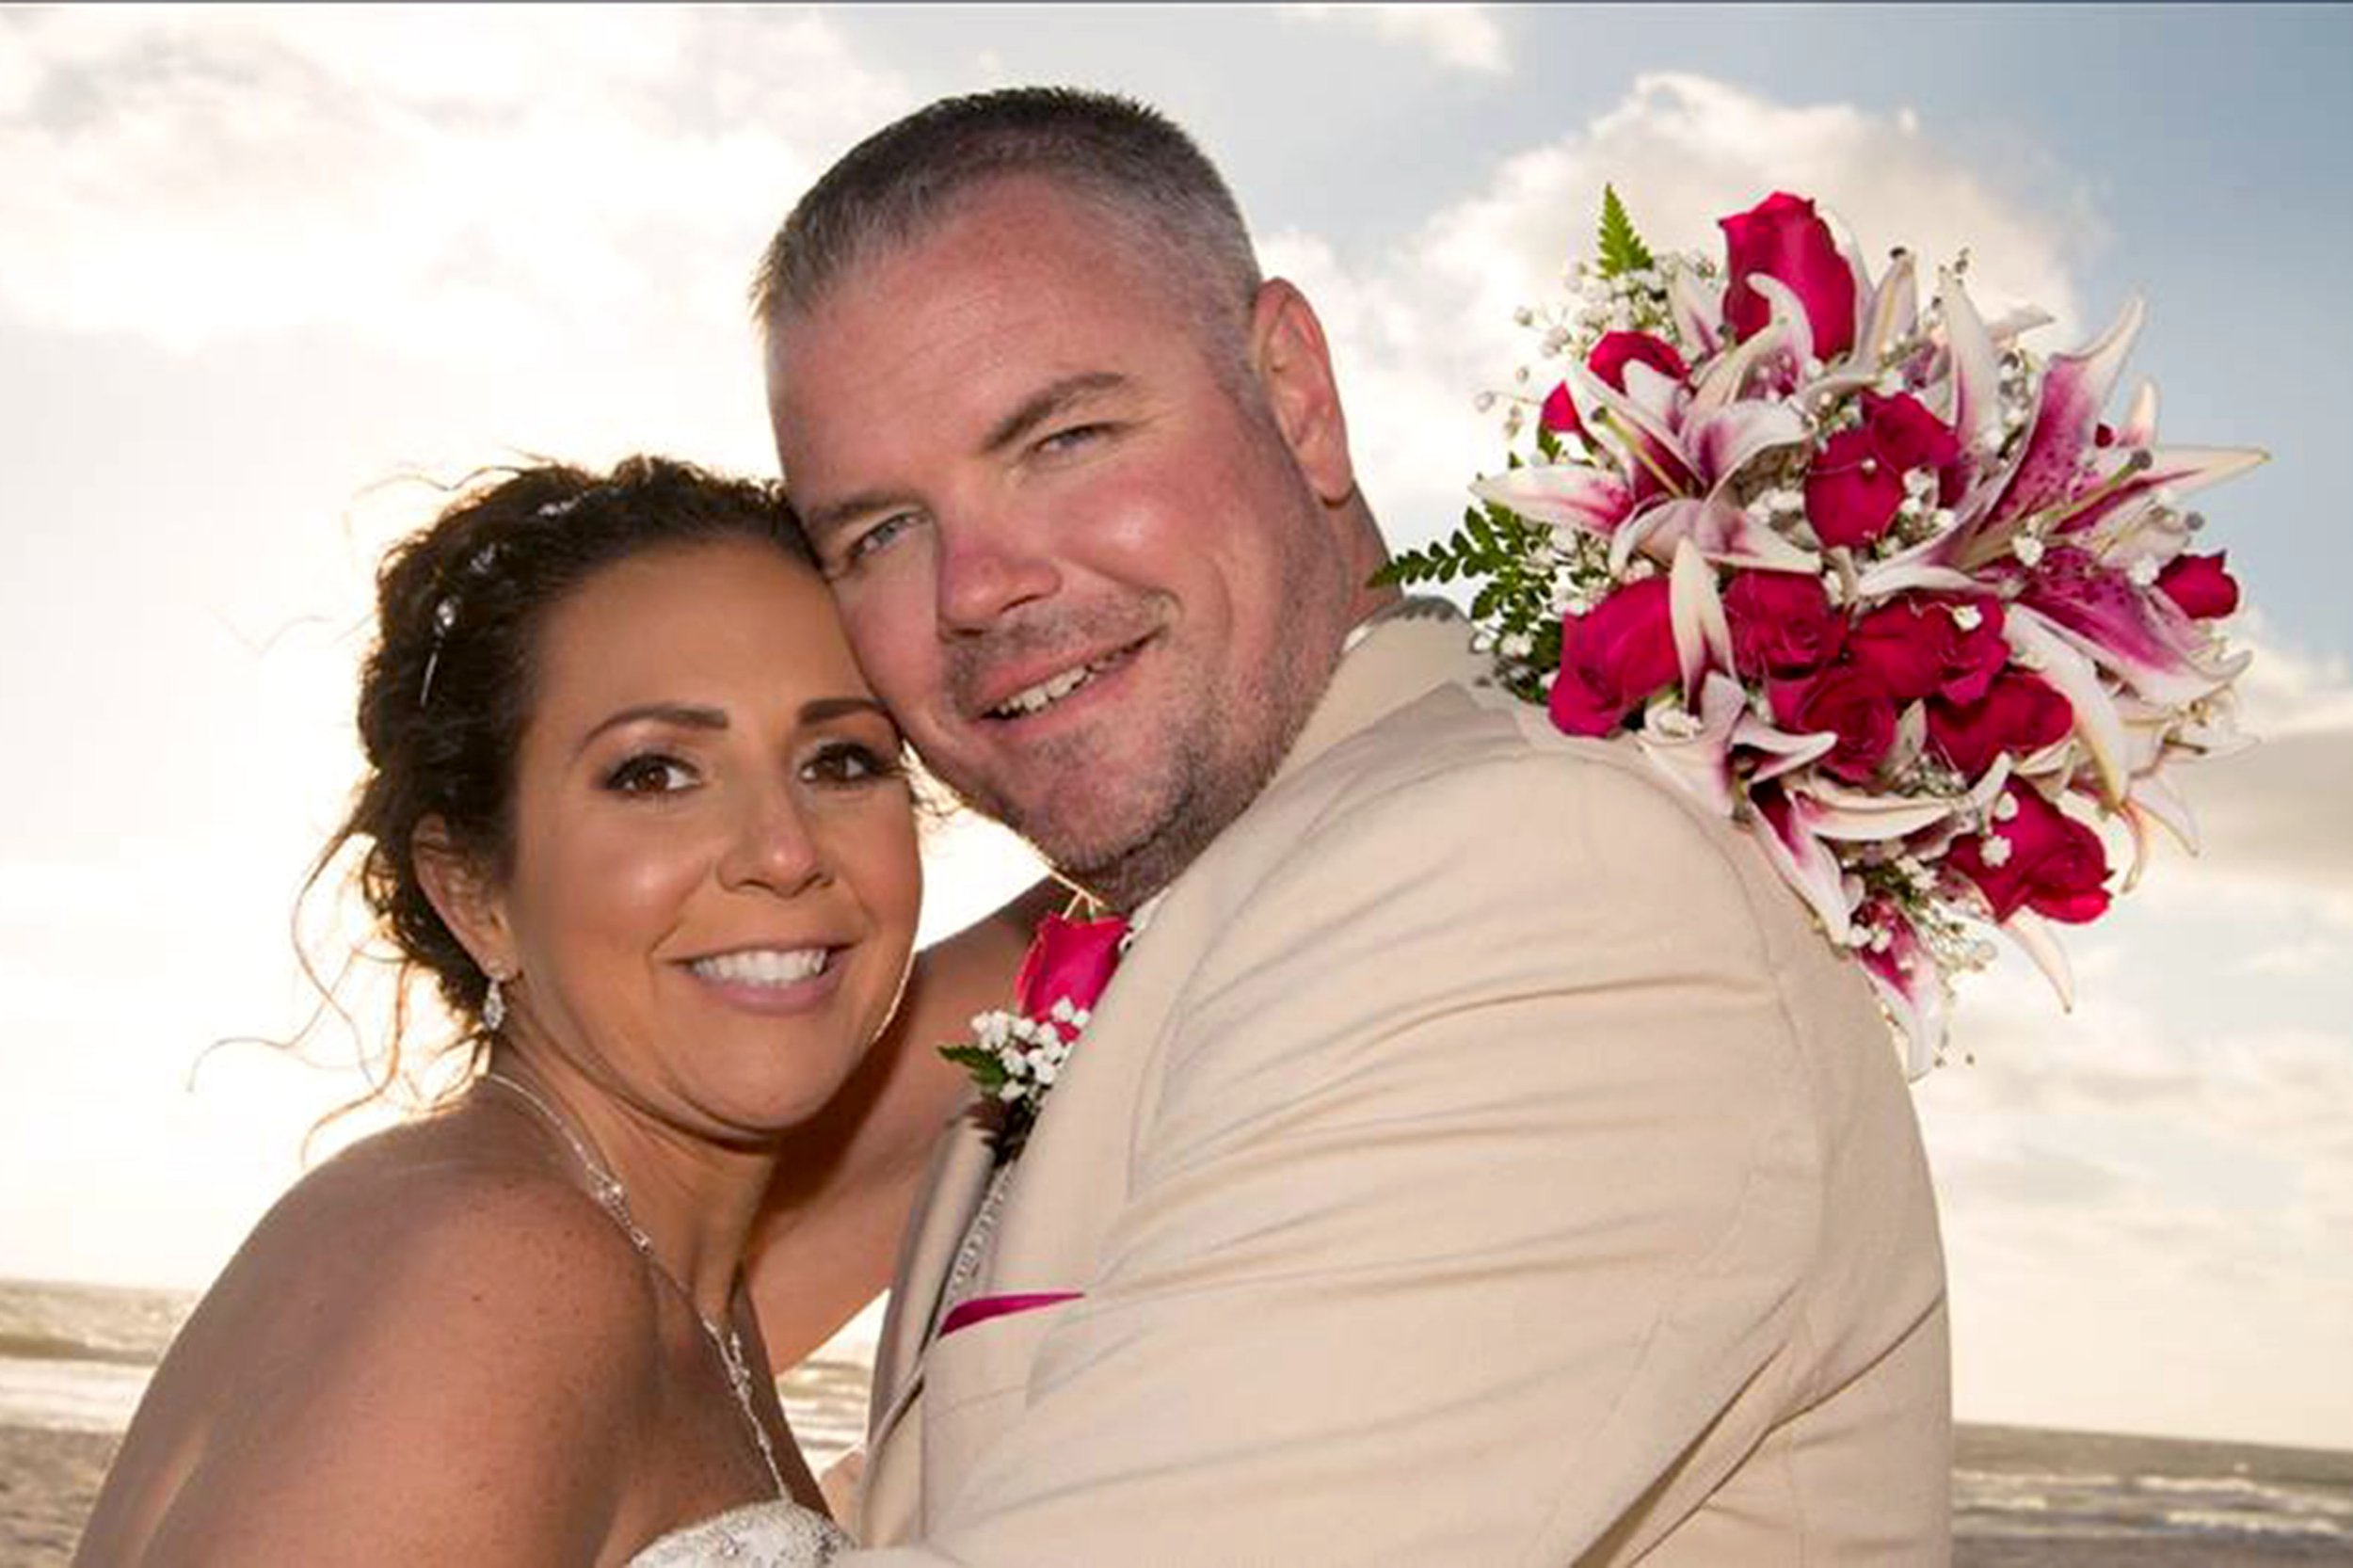 PIC FROM Karen Buono / Caters News - (PICTURED: Karen Buono with her partner John on their wedding day in April 2018) - A woman who finally lost her virginity at 32 has opened up about the rare condition that meant she could never have penetrative sex because it was like hitting a brick wall.Karen Buono, 35, spent most of her life suffering from a painful condition called vaginismus which meant she was never able to insert a tampon, have a pap smear or engage in penetrative sex.SEE CATERS COPY